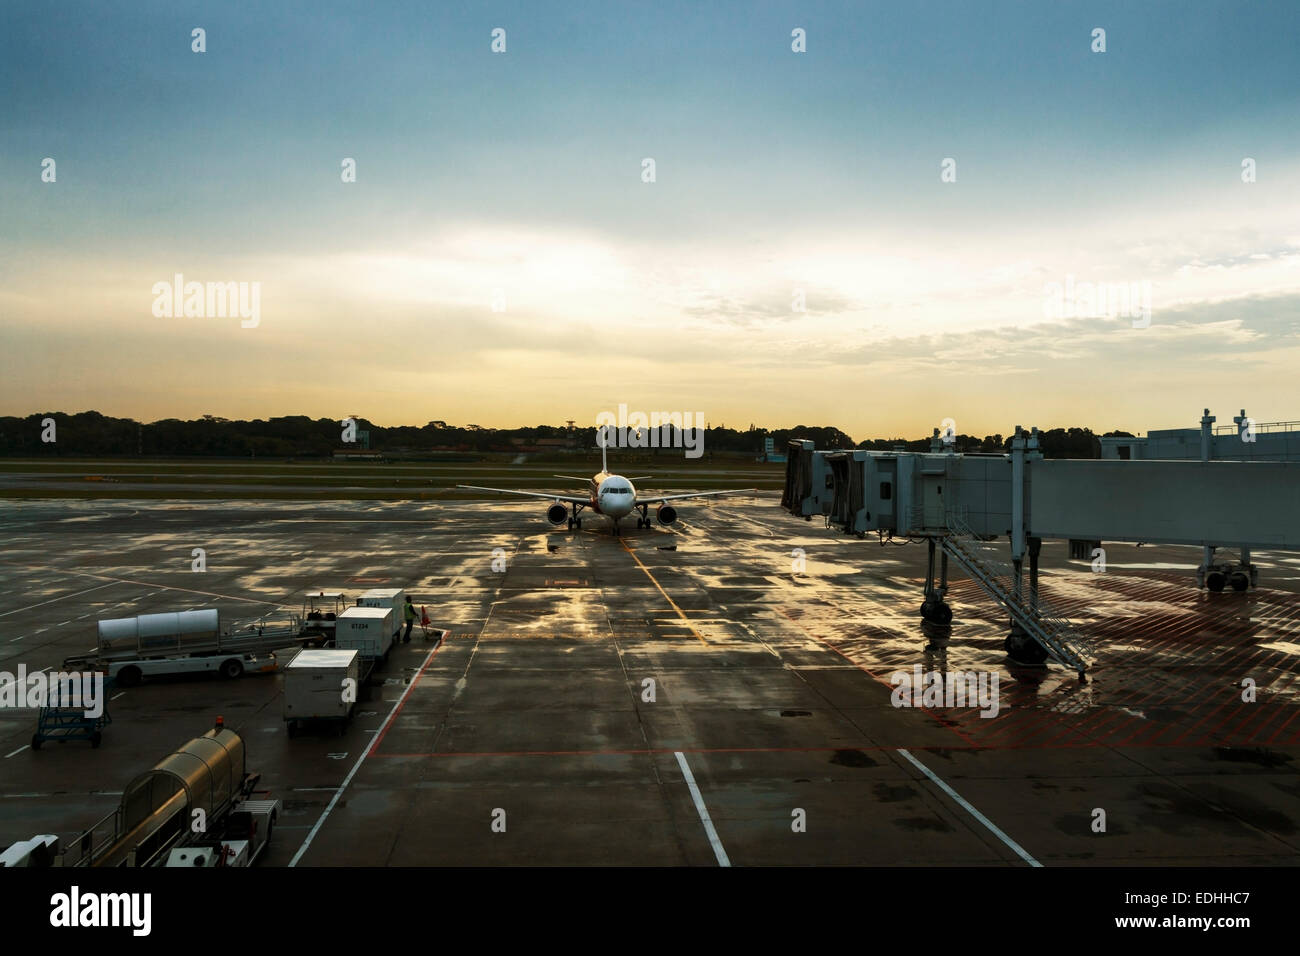 Plane arrival at Changi Airport - Stock Image